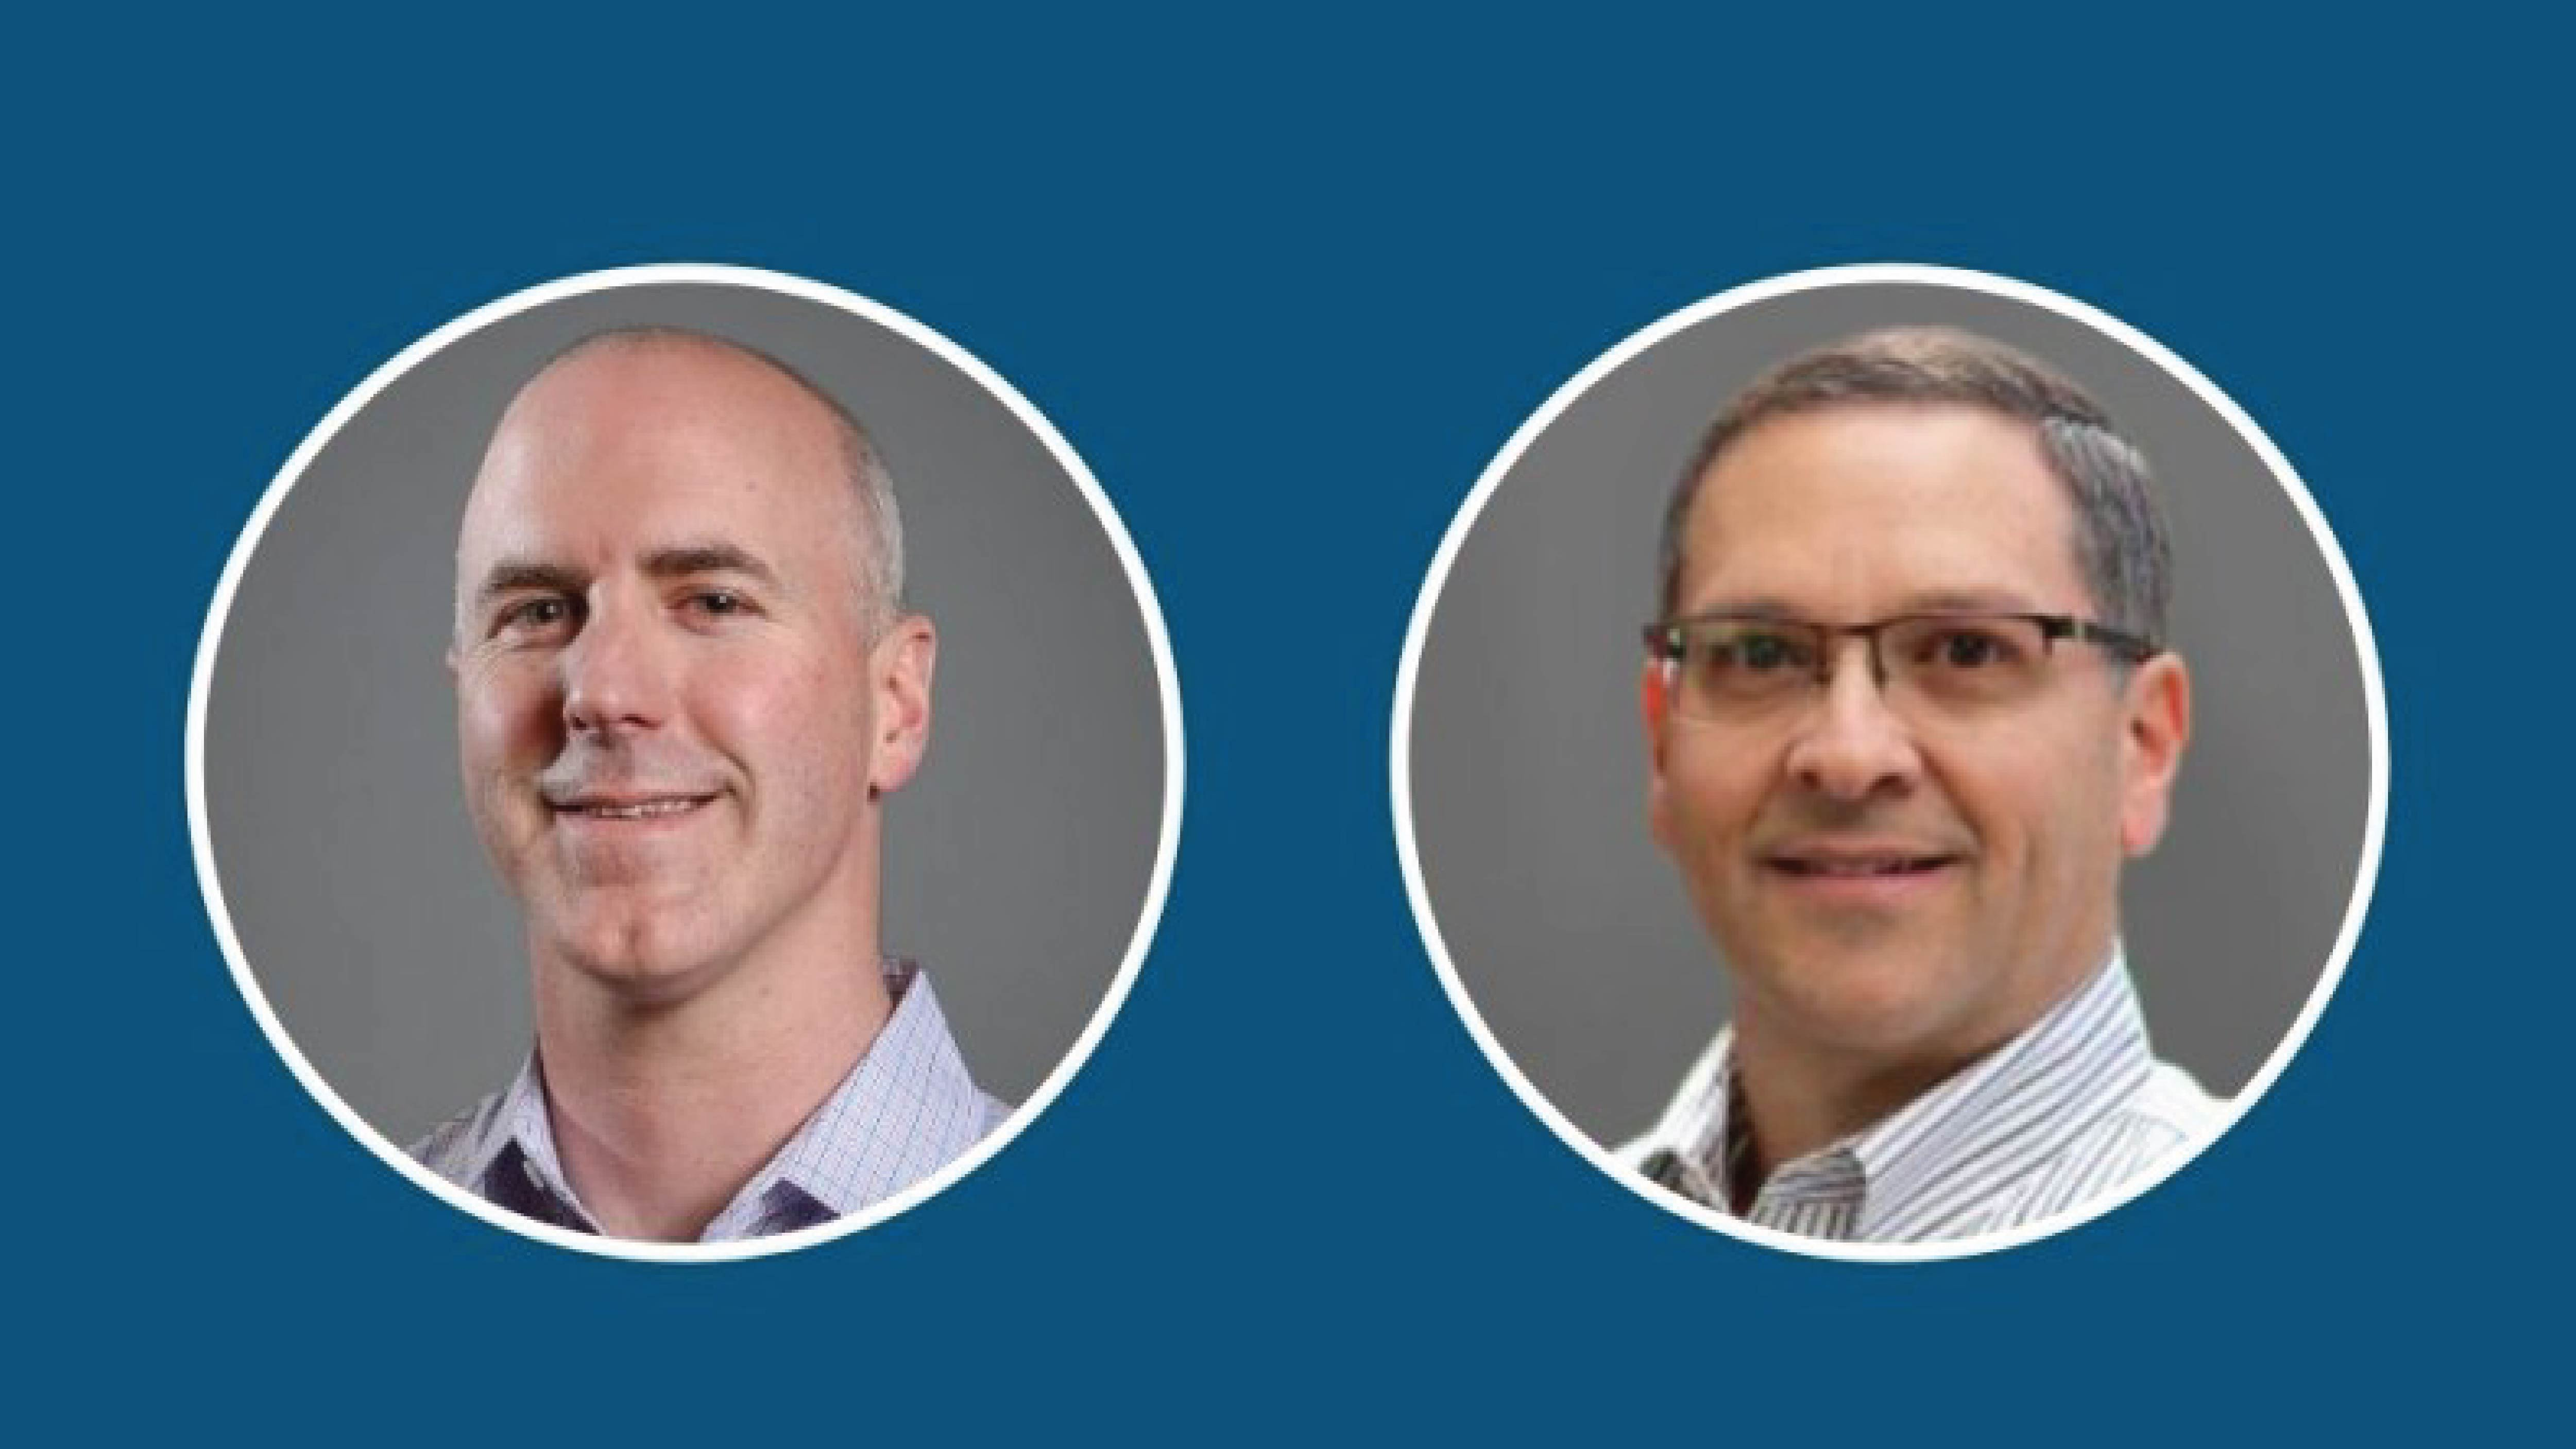 Infosec Announces Two New Board Members, Welcomes Paul Shain and Neil Etheridge